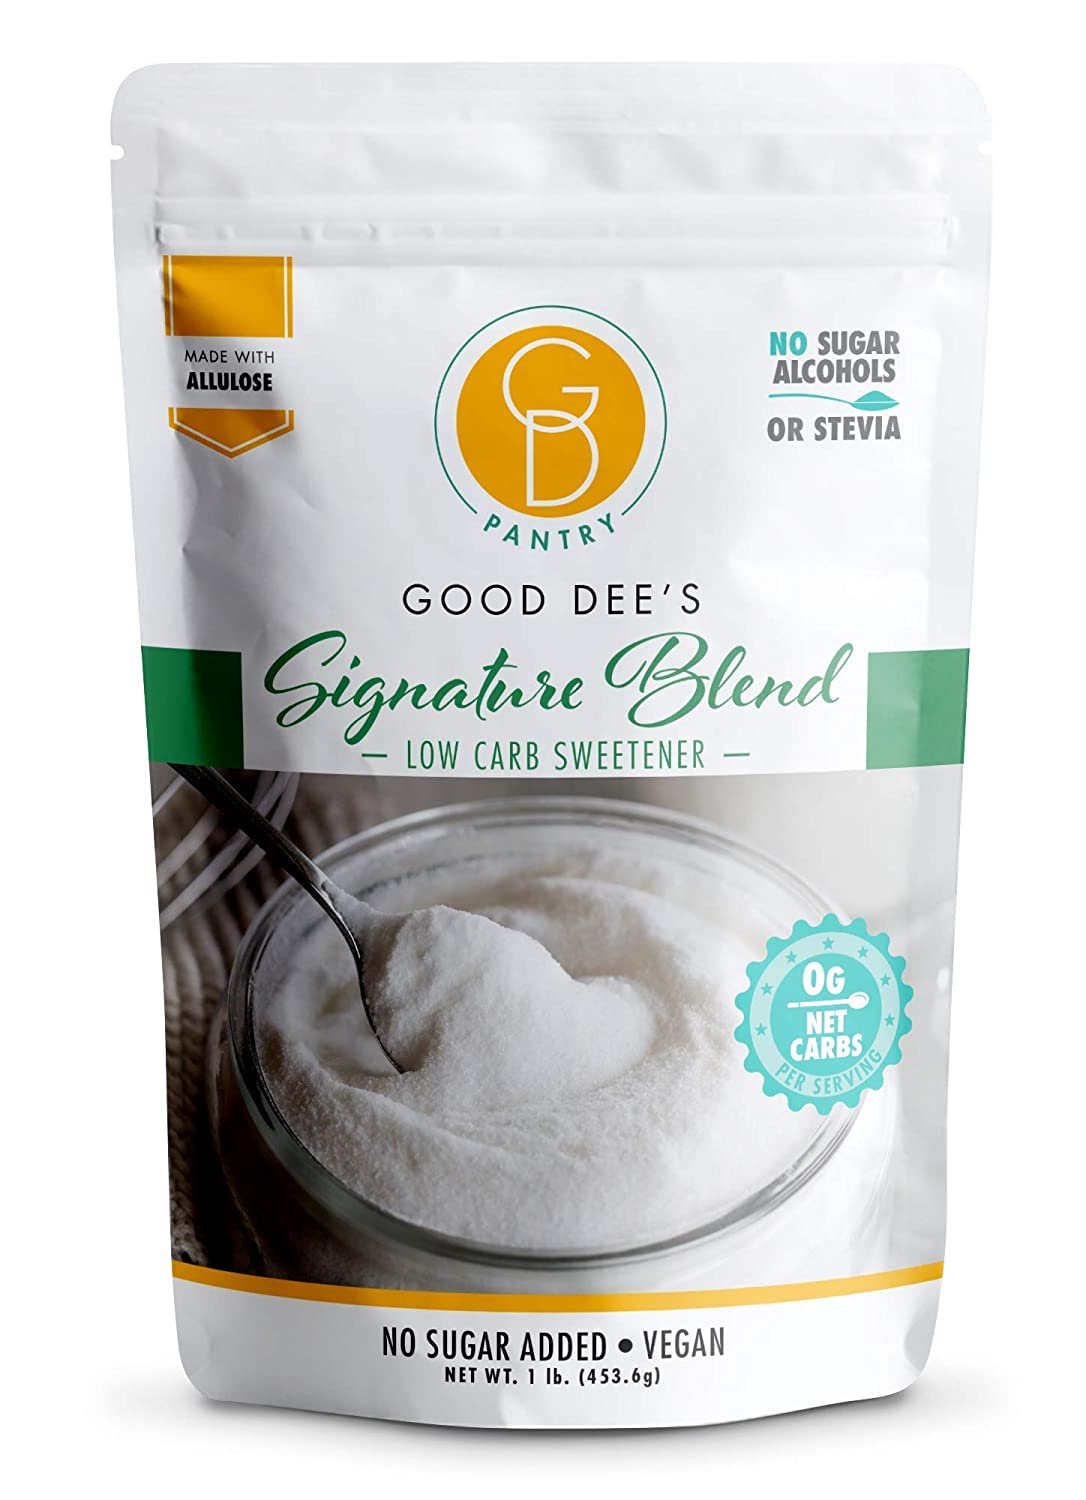 Good security Dees Keto Now free shipping Sweetener Low Allulos Blend Carb